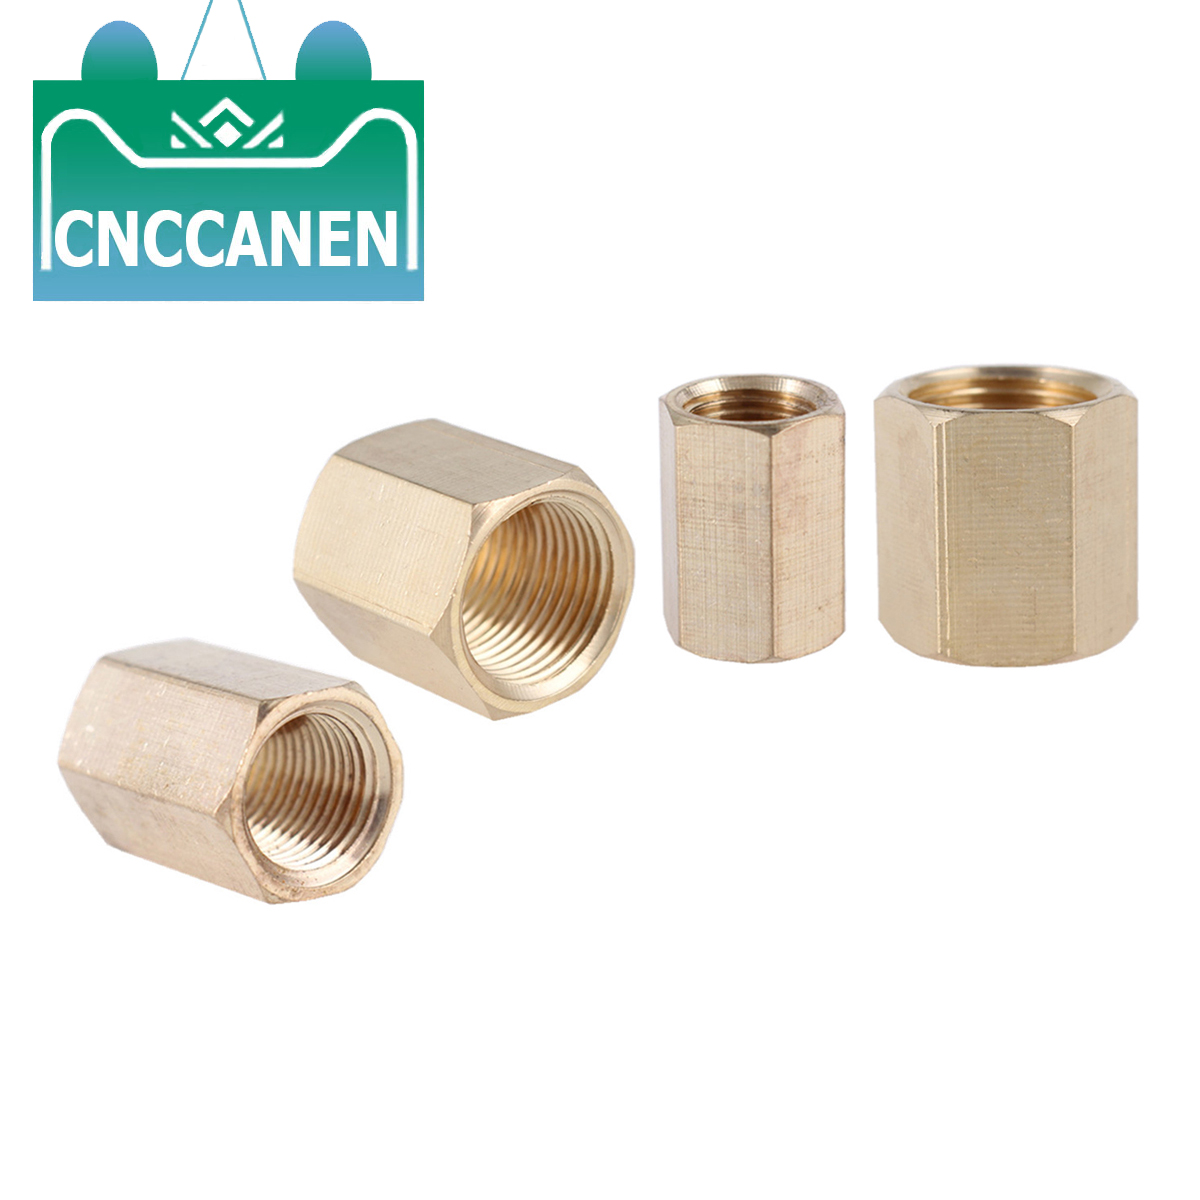 Brass Copper Hose Pipe Fitting Hex Nut Rod Coupling Coupler Straight Fast Connetor Female Thread 1/8